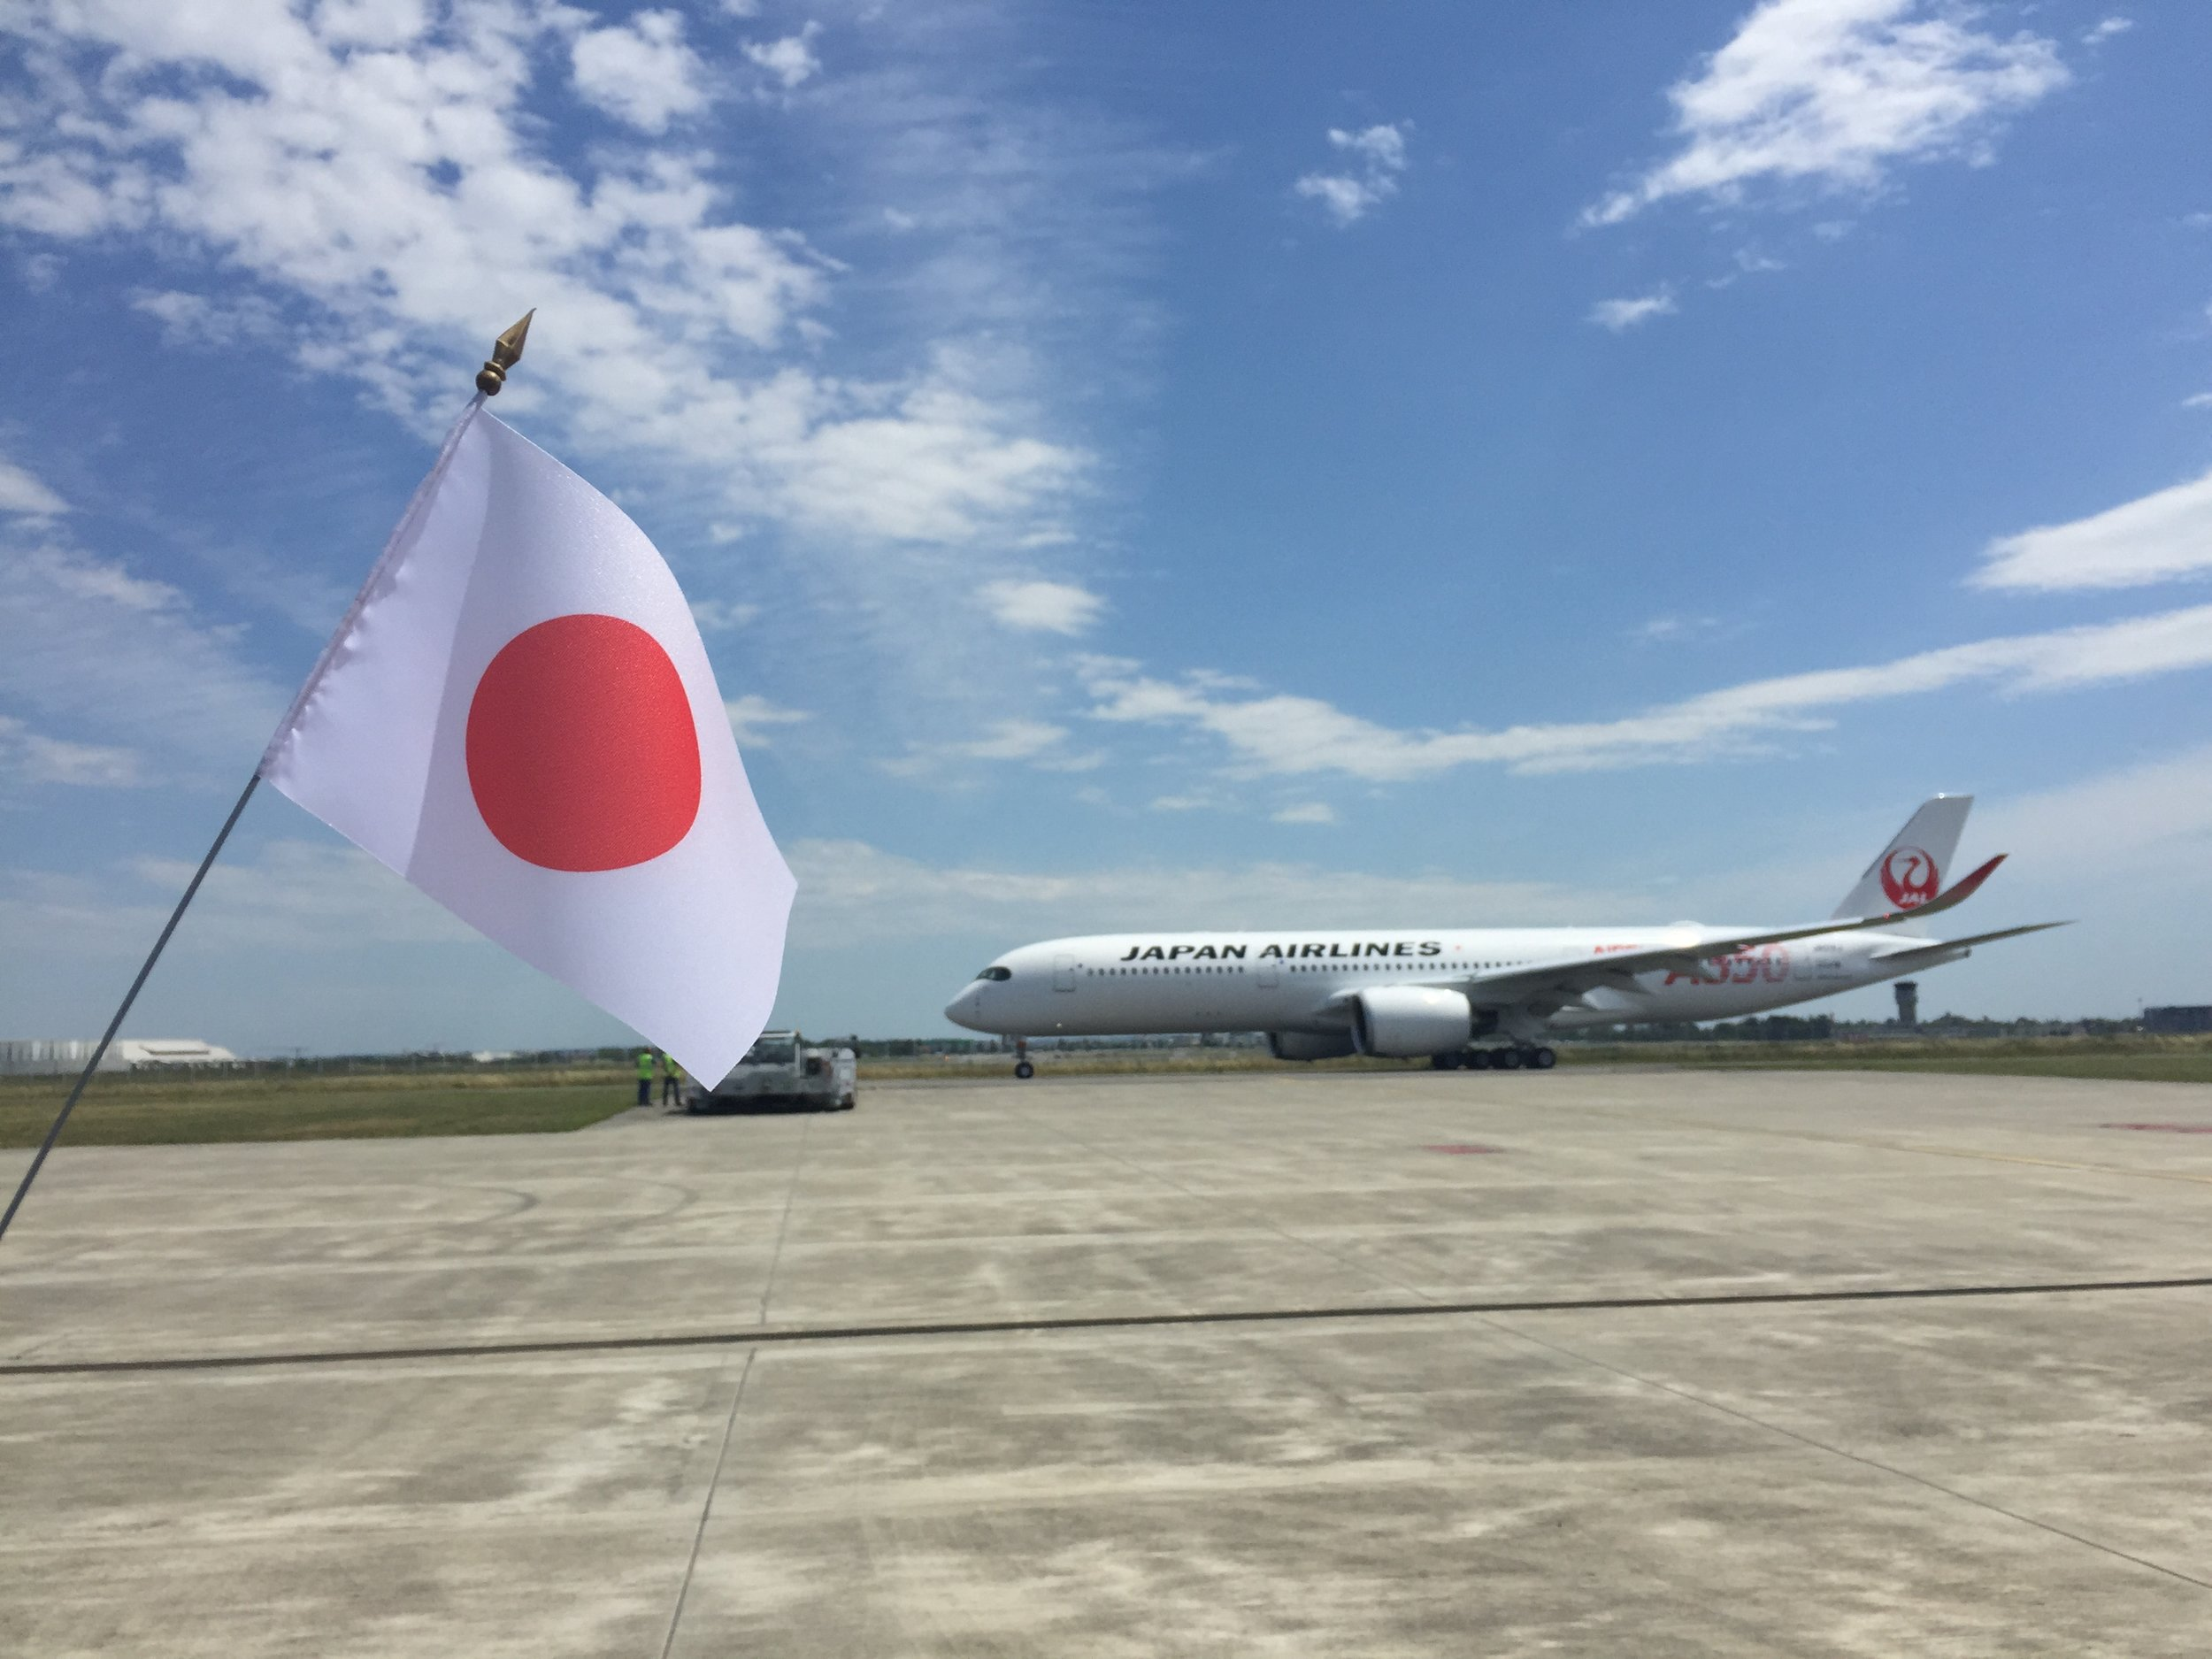 jal a350 europe.JPG